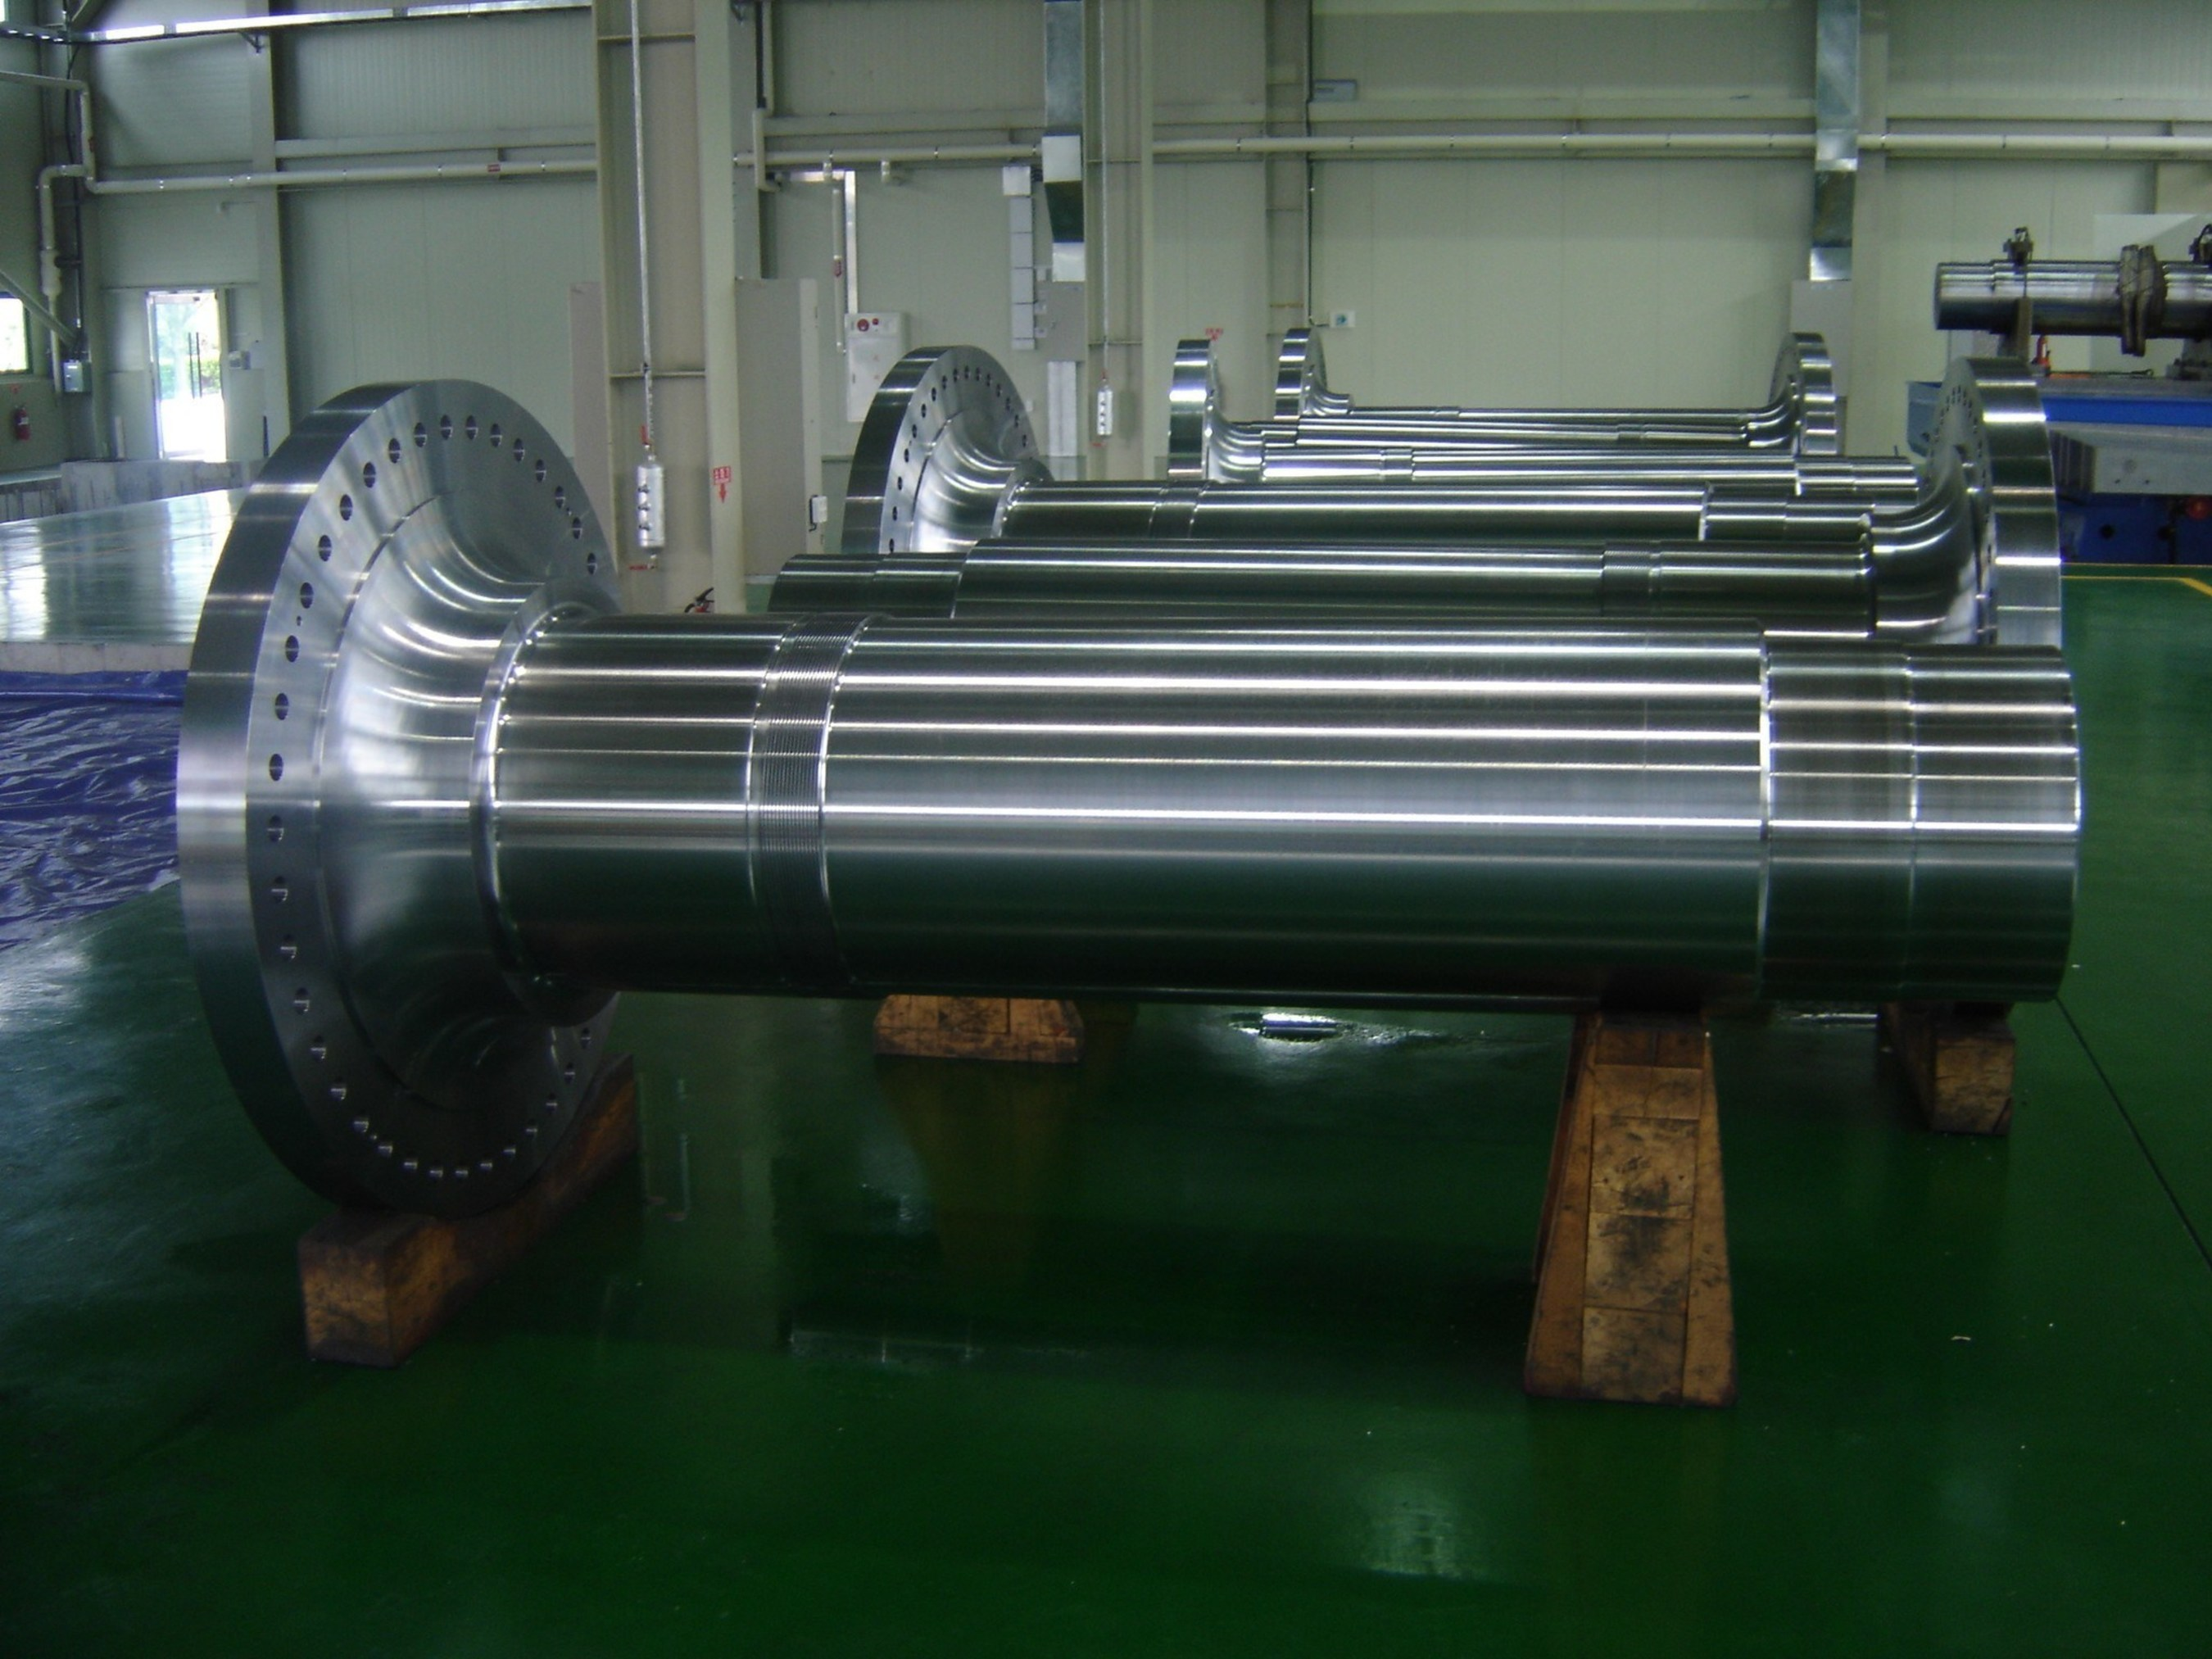 Pictured: Forged main shaft for wind turbine.